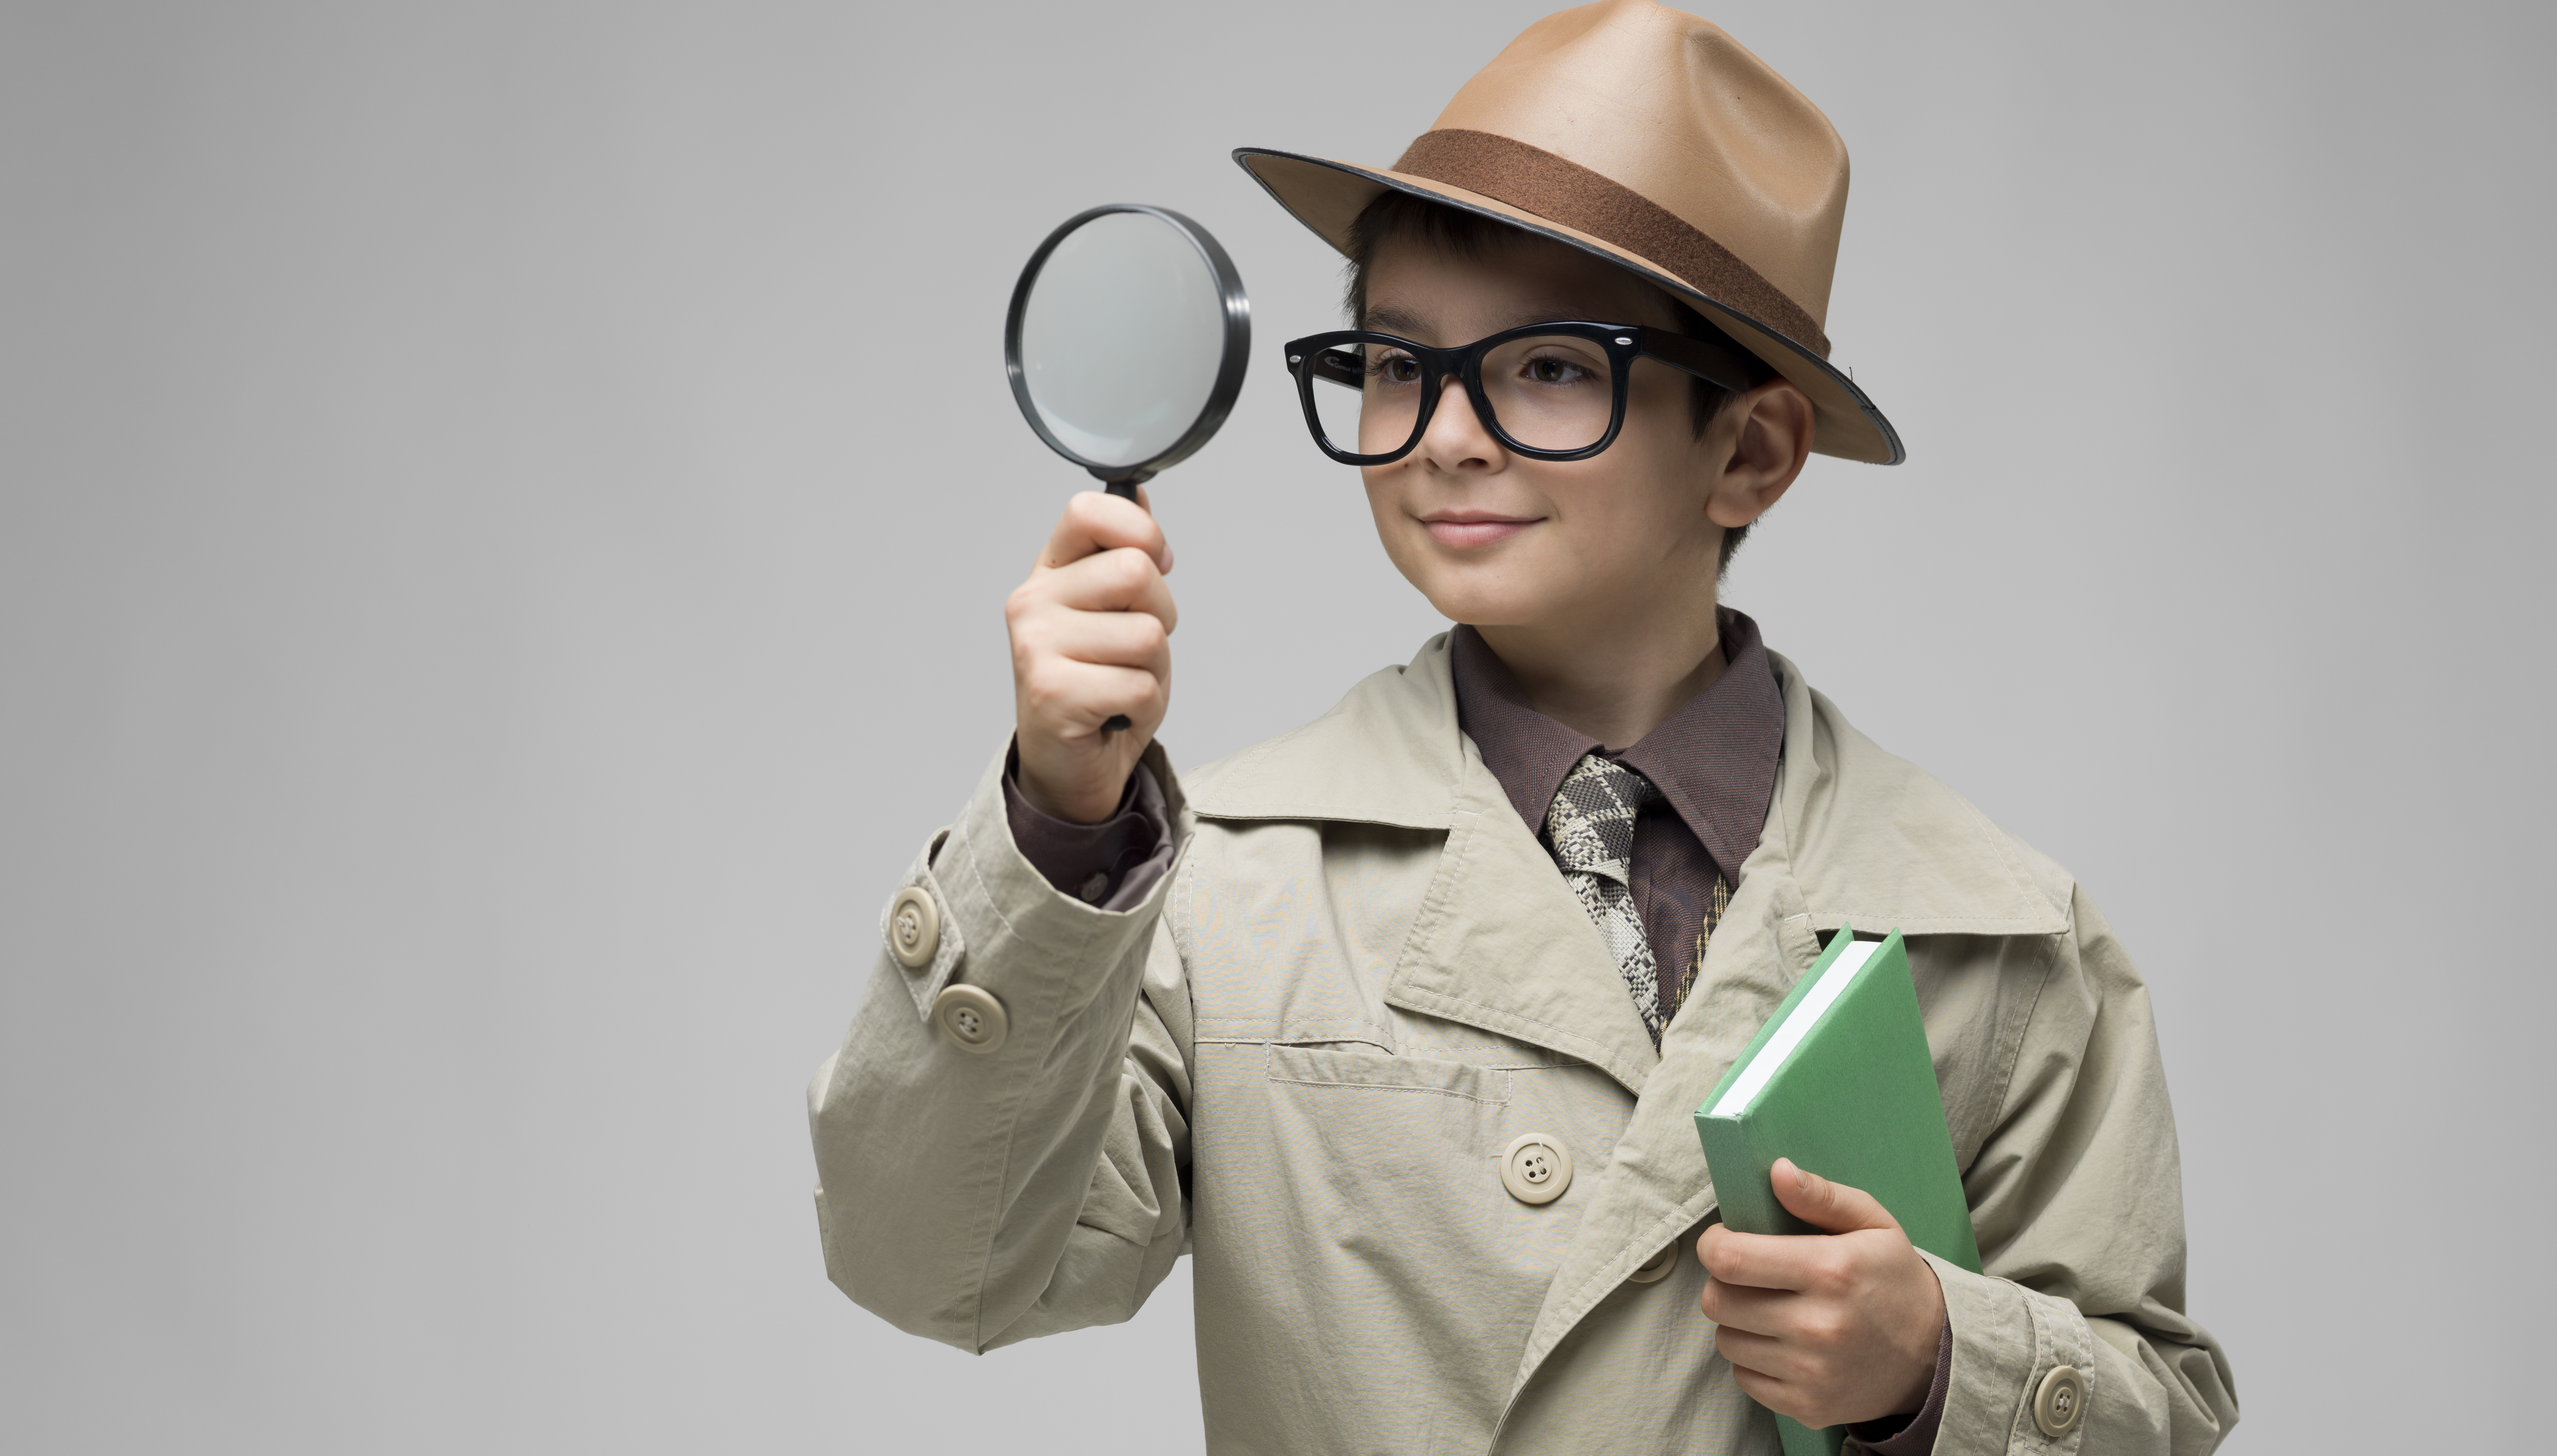 When the Detective Is a Kid